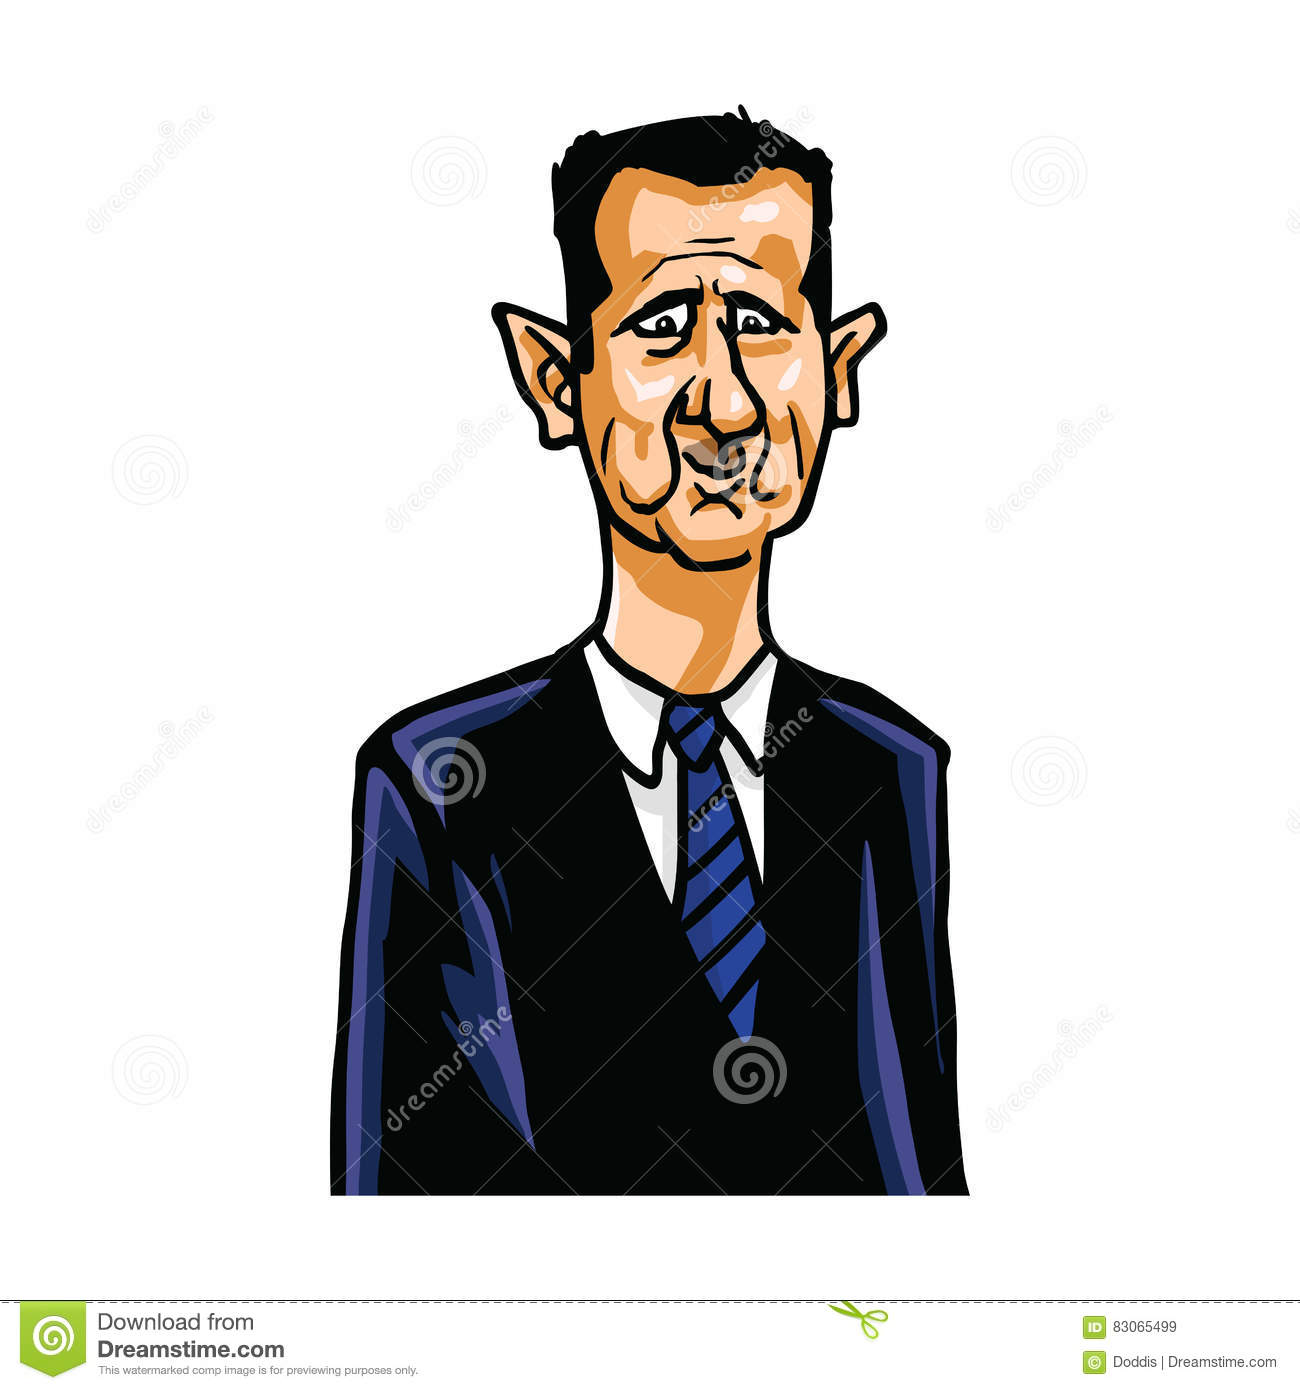 Image result for Assad CARTOON